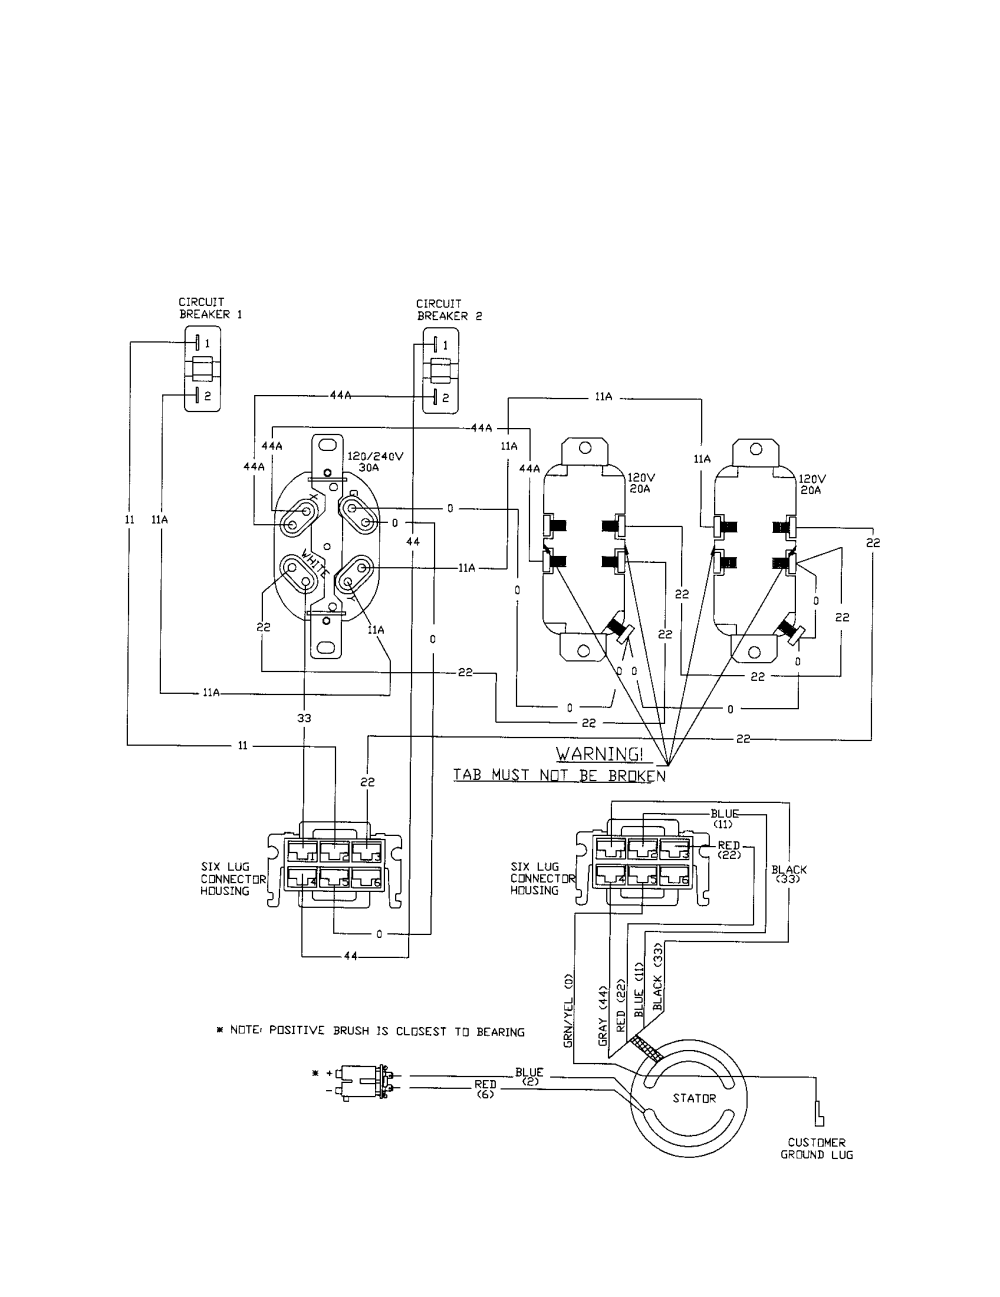 medium resolution of onan 4000 generator wiring diagram onan 4000 rv generator wiring diagram wiring diagrams free download jeep